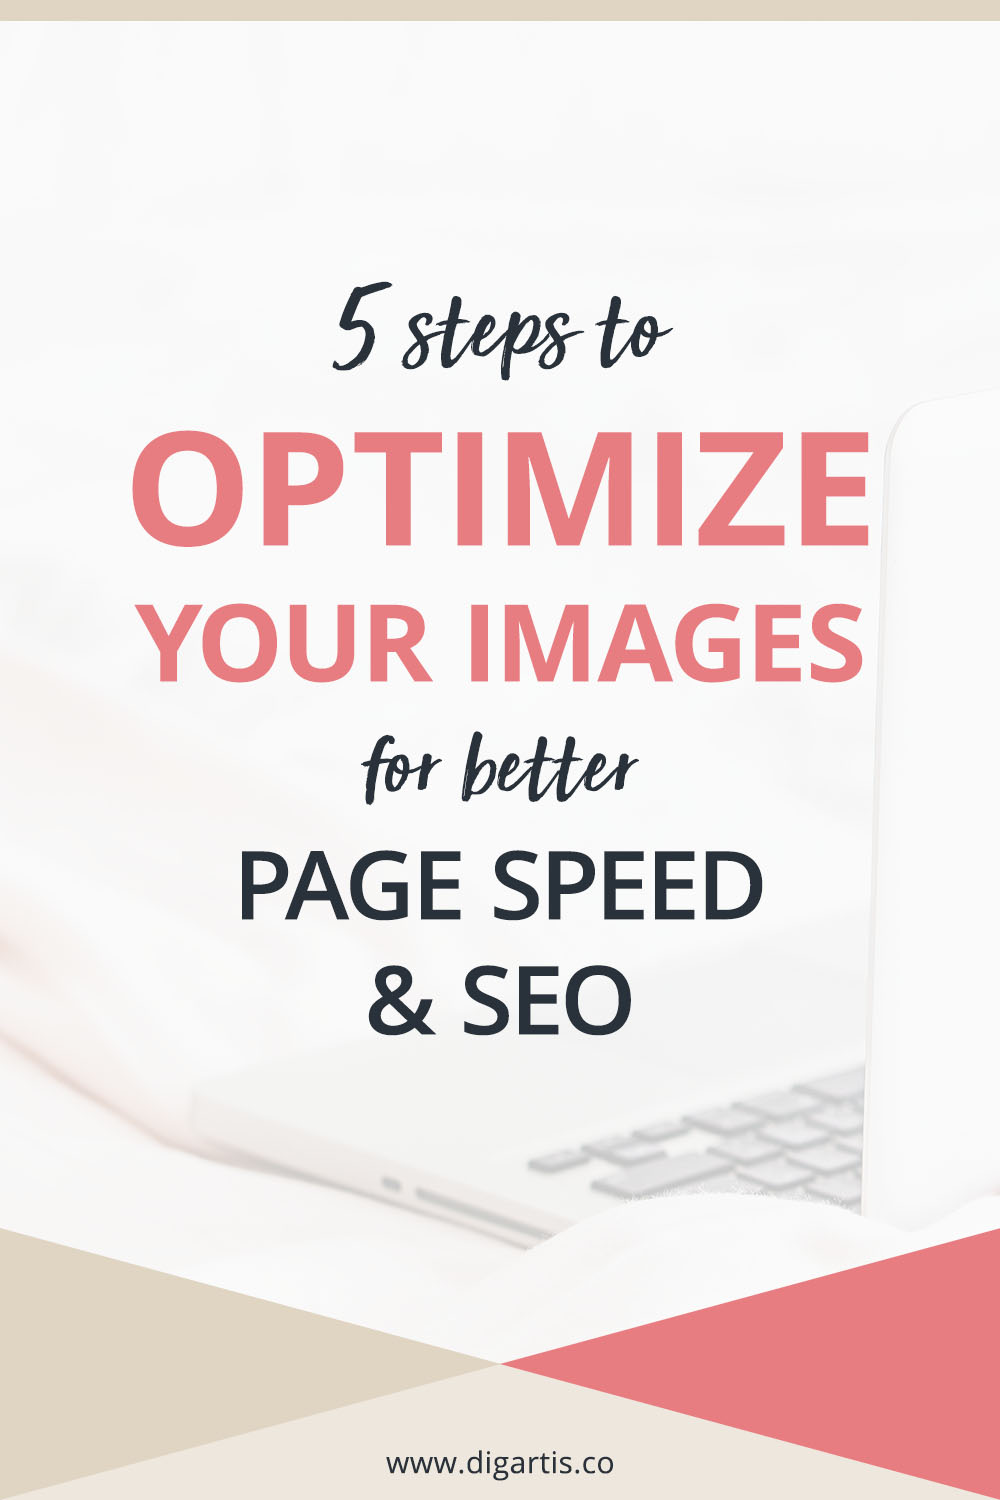 5 steps to optimize images for better page speed and SEO